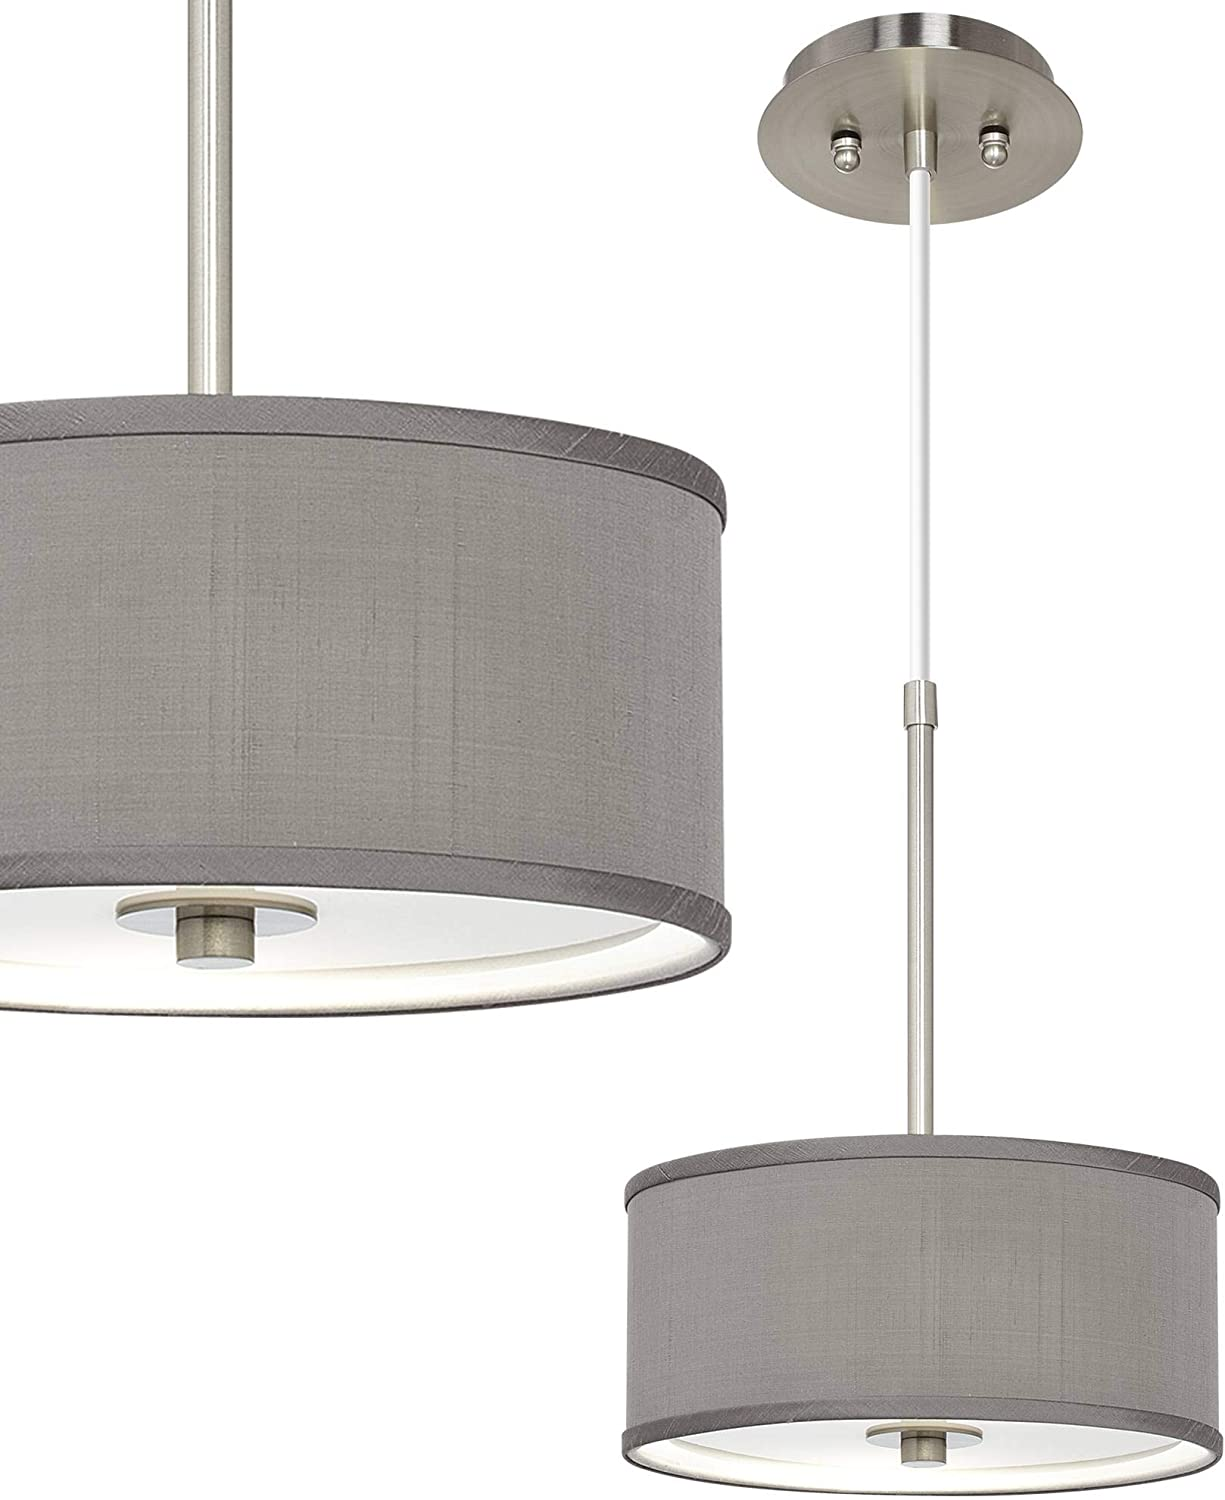 Brushed Nickel Long Beach Mall Mini Pendant Special sale item Light Fixture Co Wide Modern 4